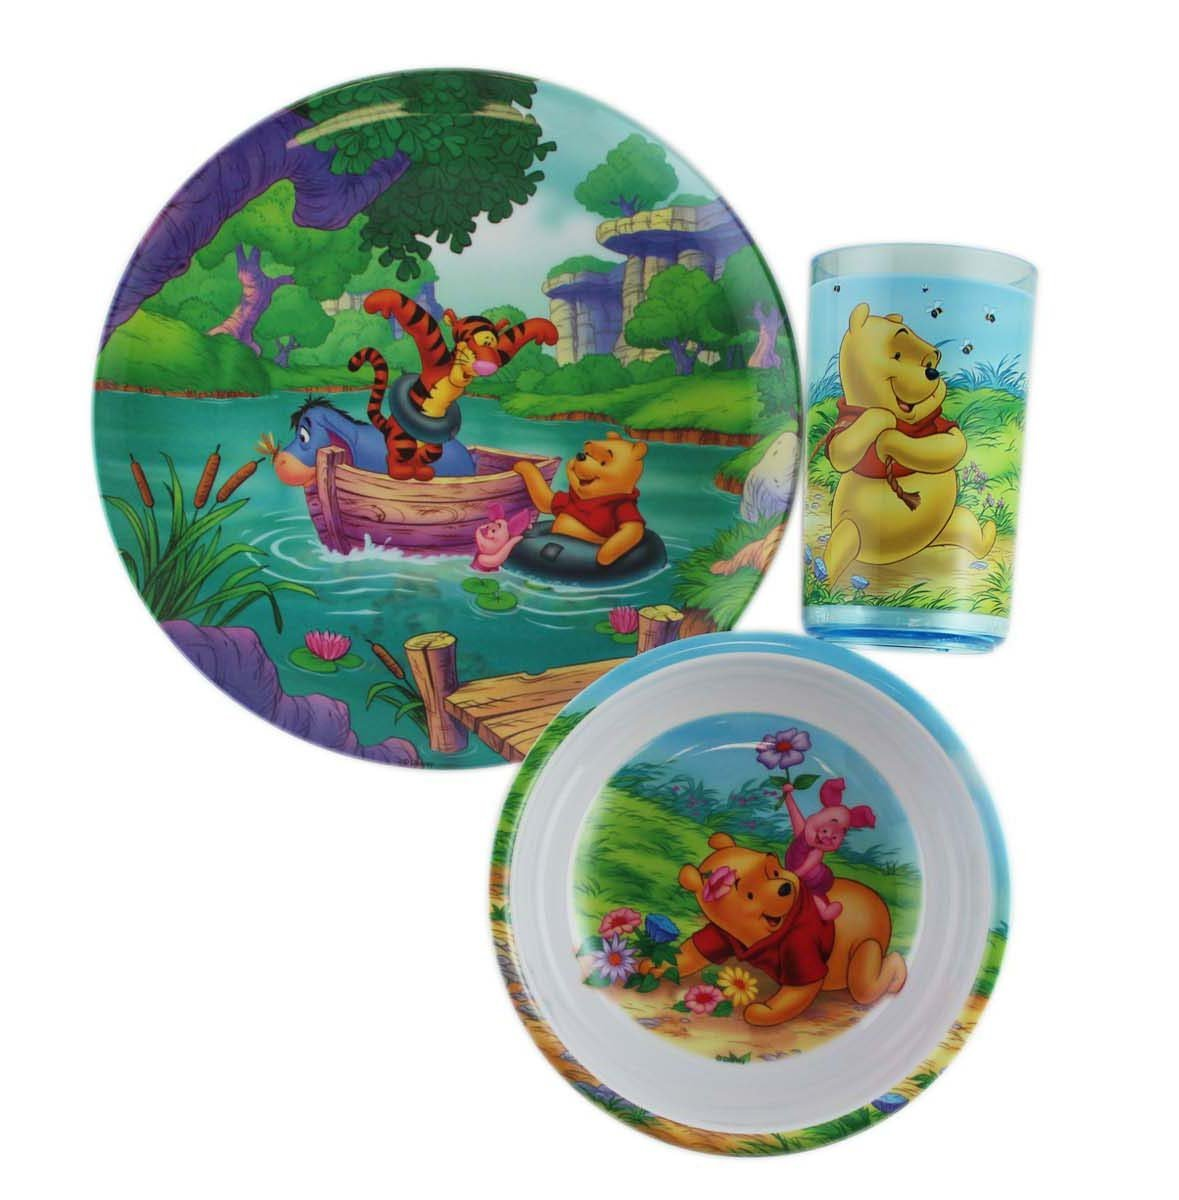 Disneyu0027s Winnie the Pooh Bowl Plate and Cup Childrenu0027s Dinnerware Set  sc 1 st  Walmart & Disneyu0027s Winnie the Pooh Bowl Plate and Cup Childrenu0027s Dinnerware ...